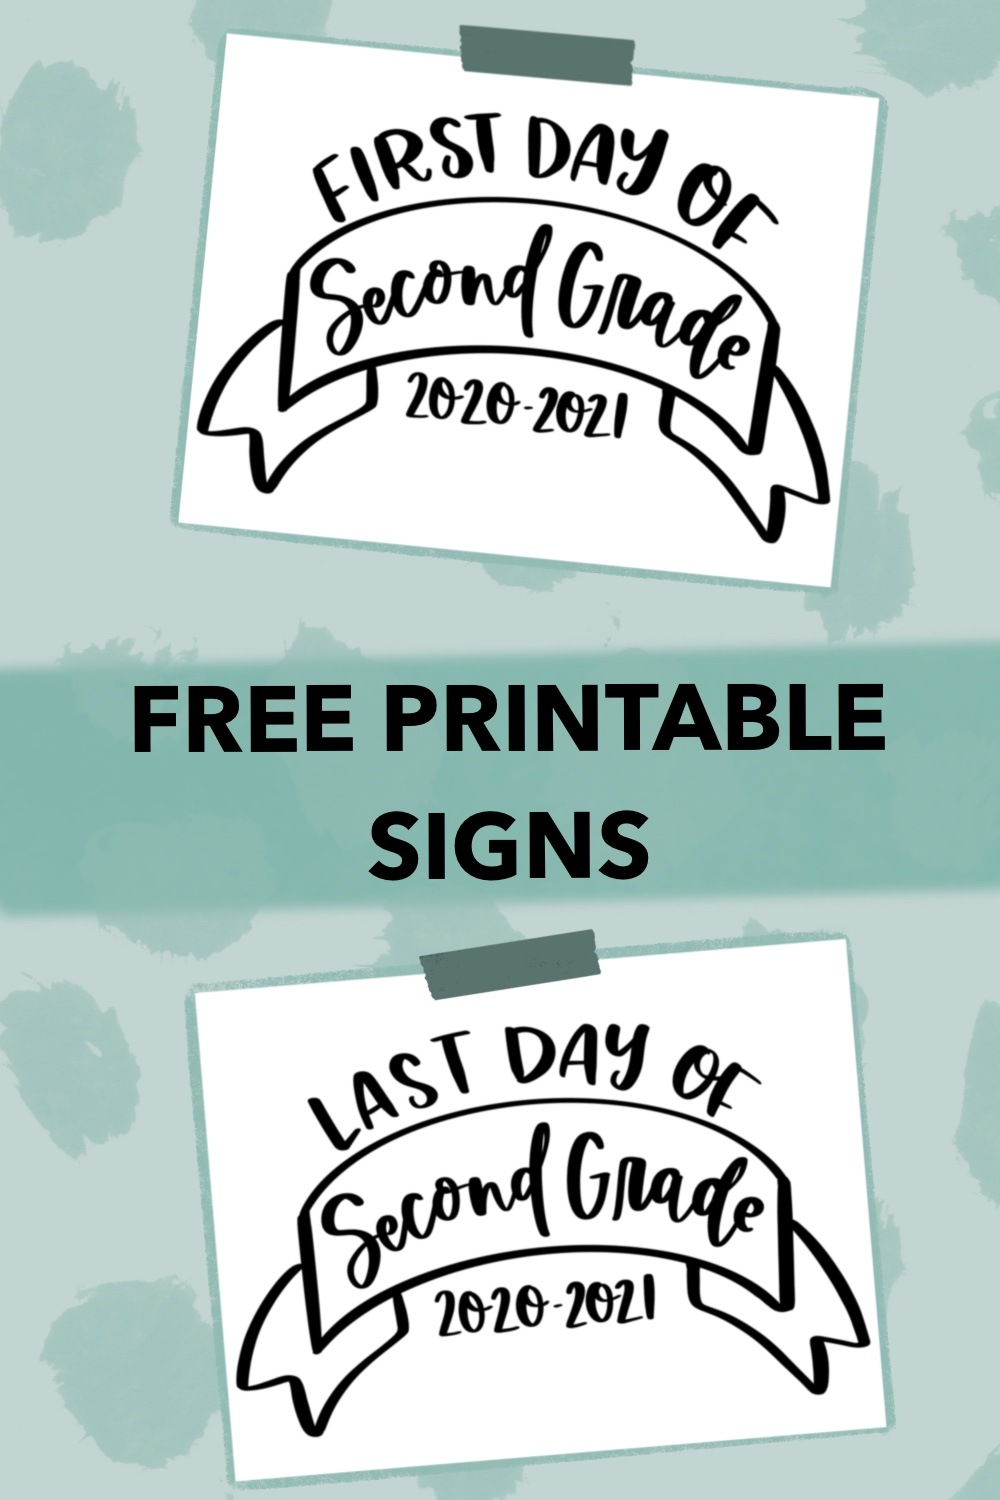 Free Printable Signs for school photos